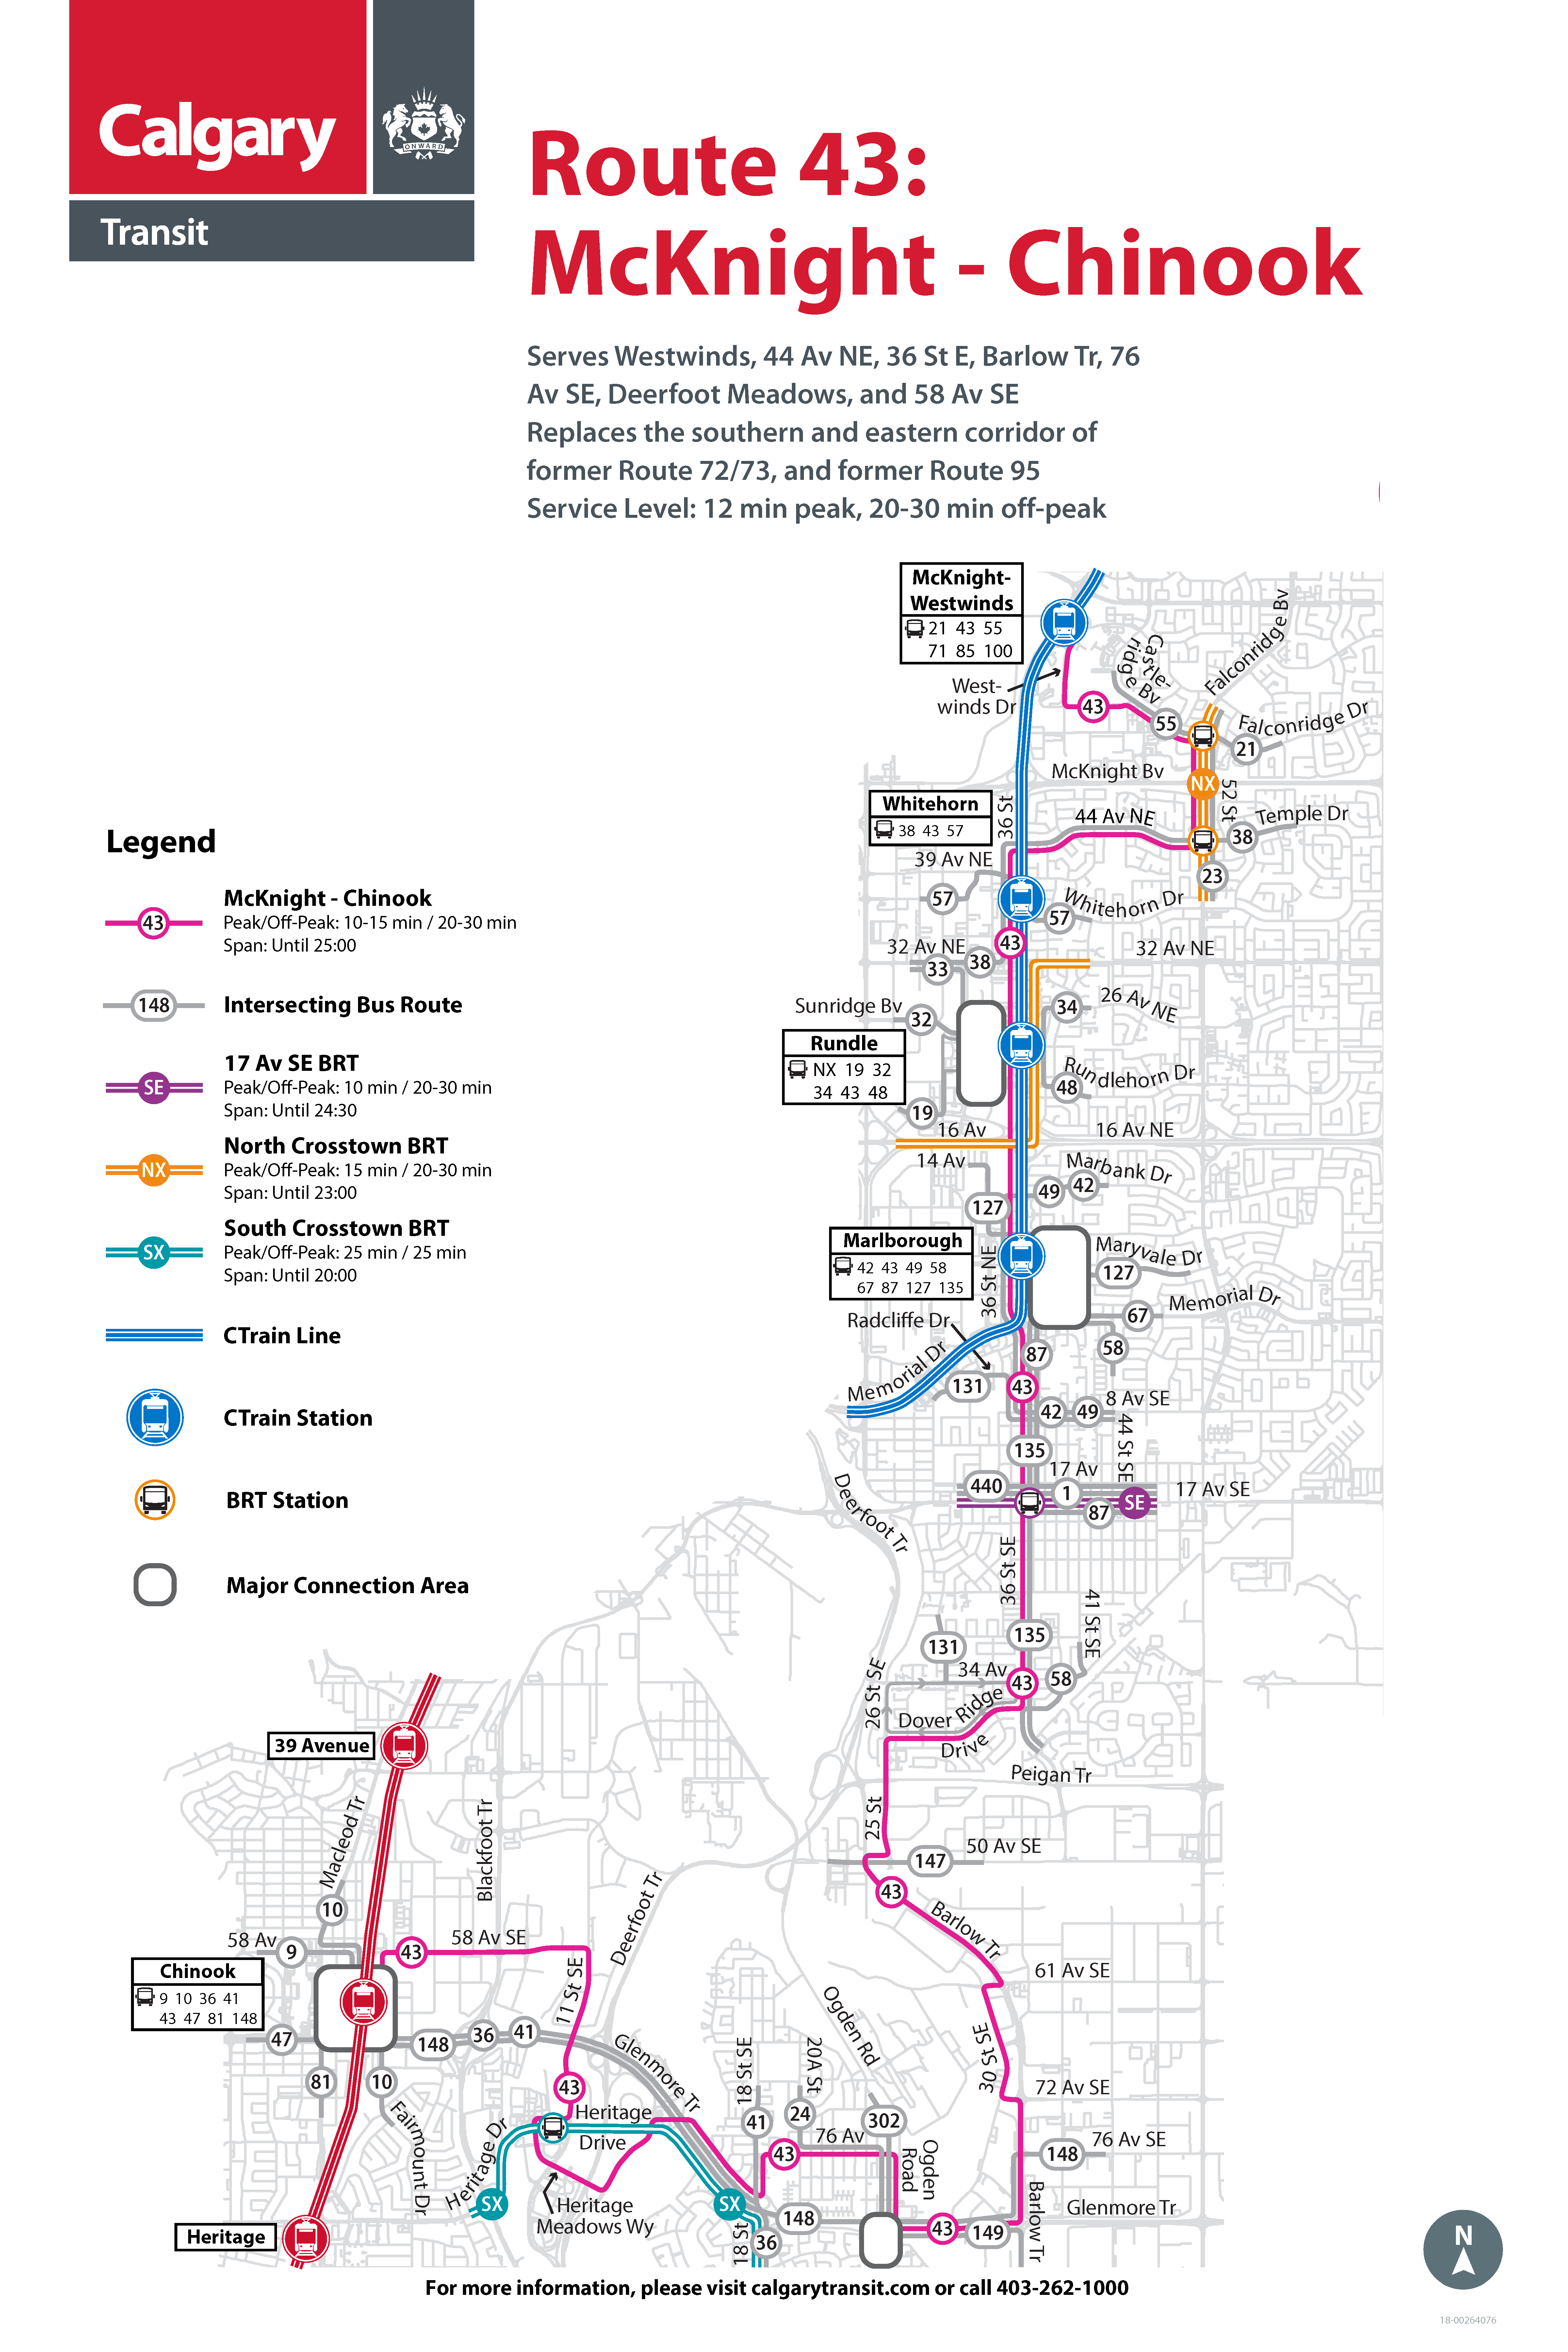 2018 Transit Service Review Engage